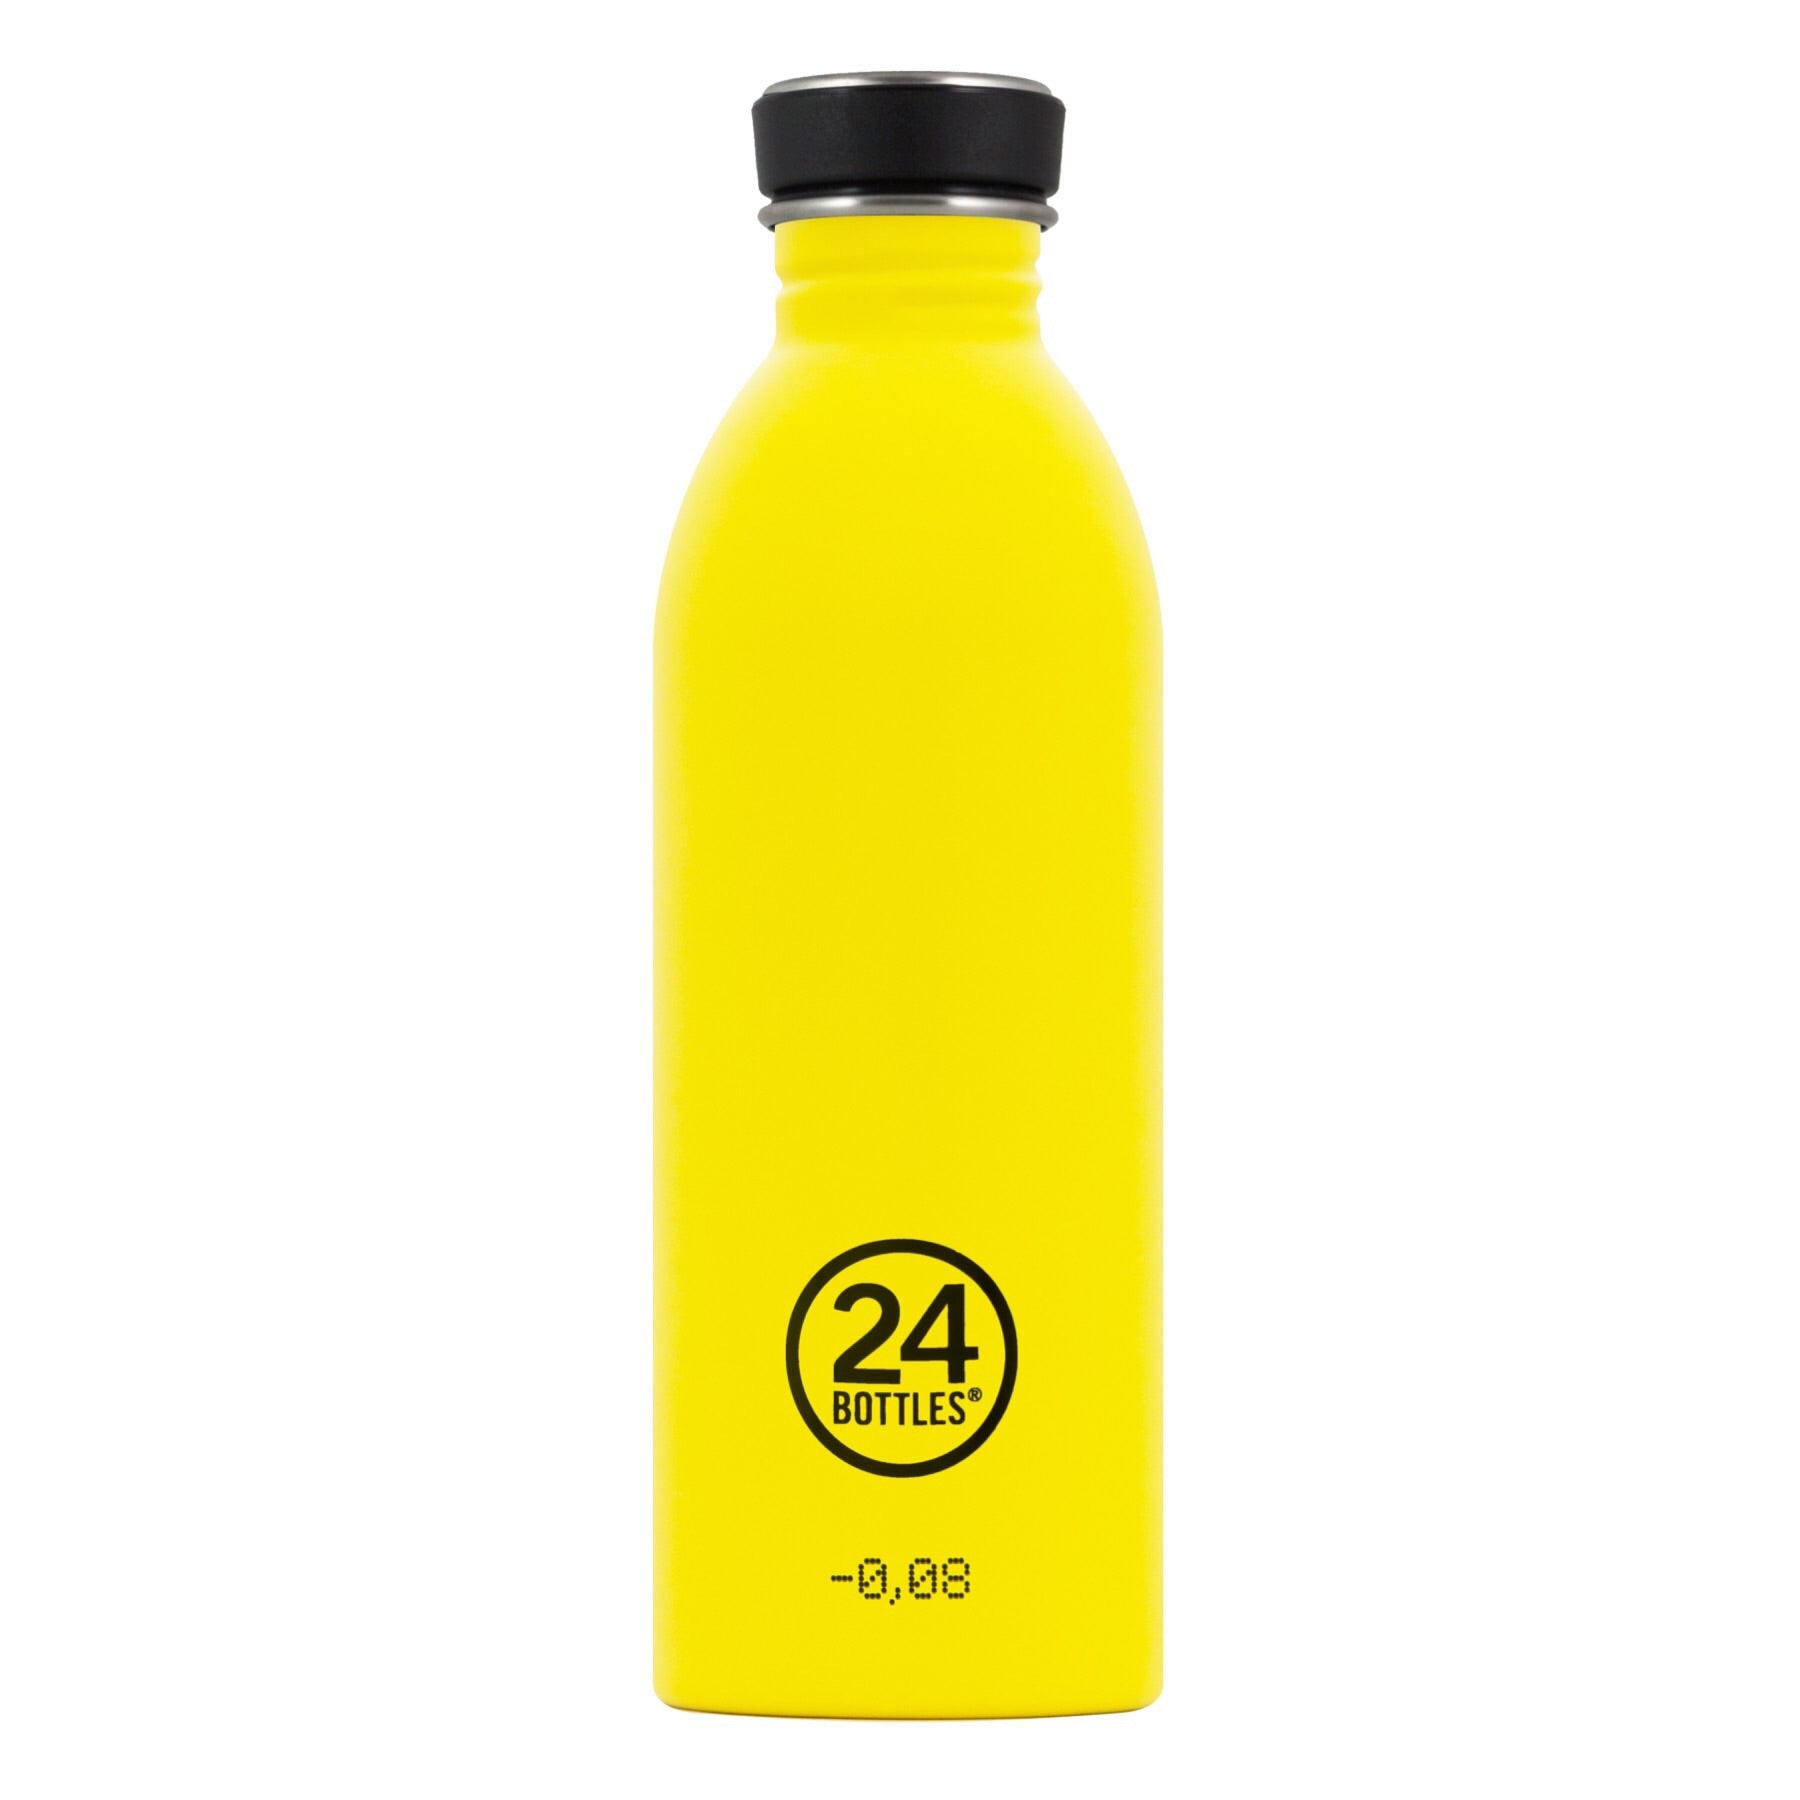 24Bottles Urban Bottle 500ml Taxi Yellow - little-tiger-togs